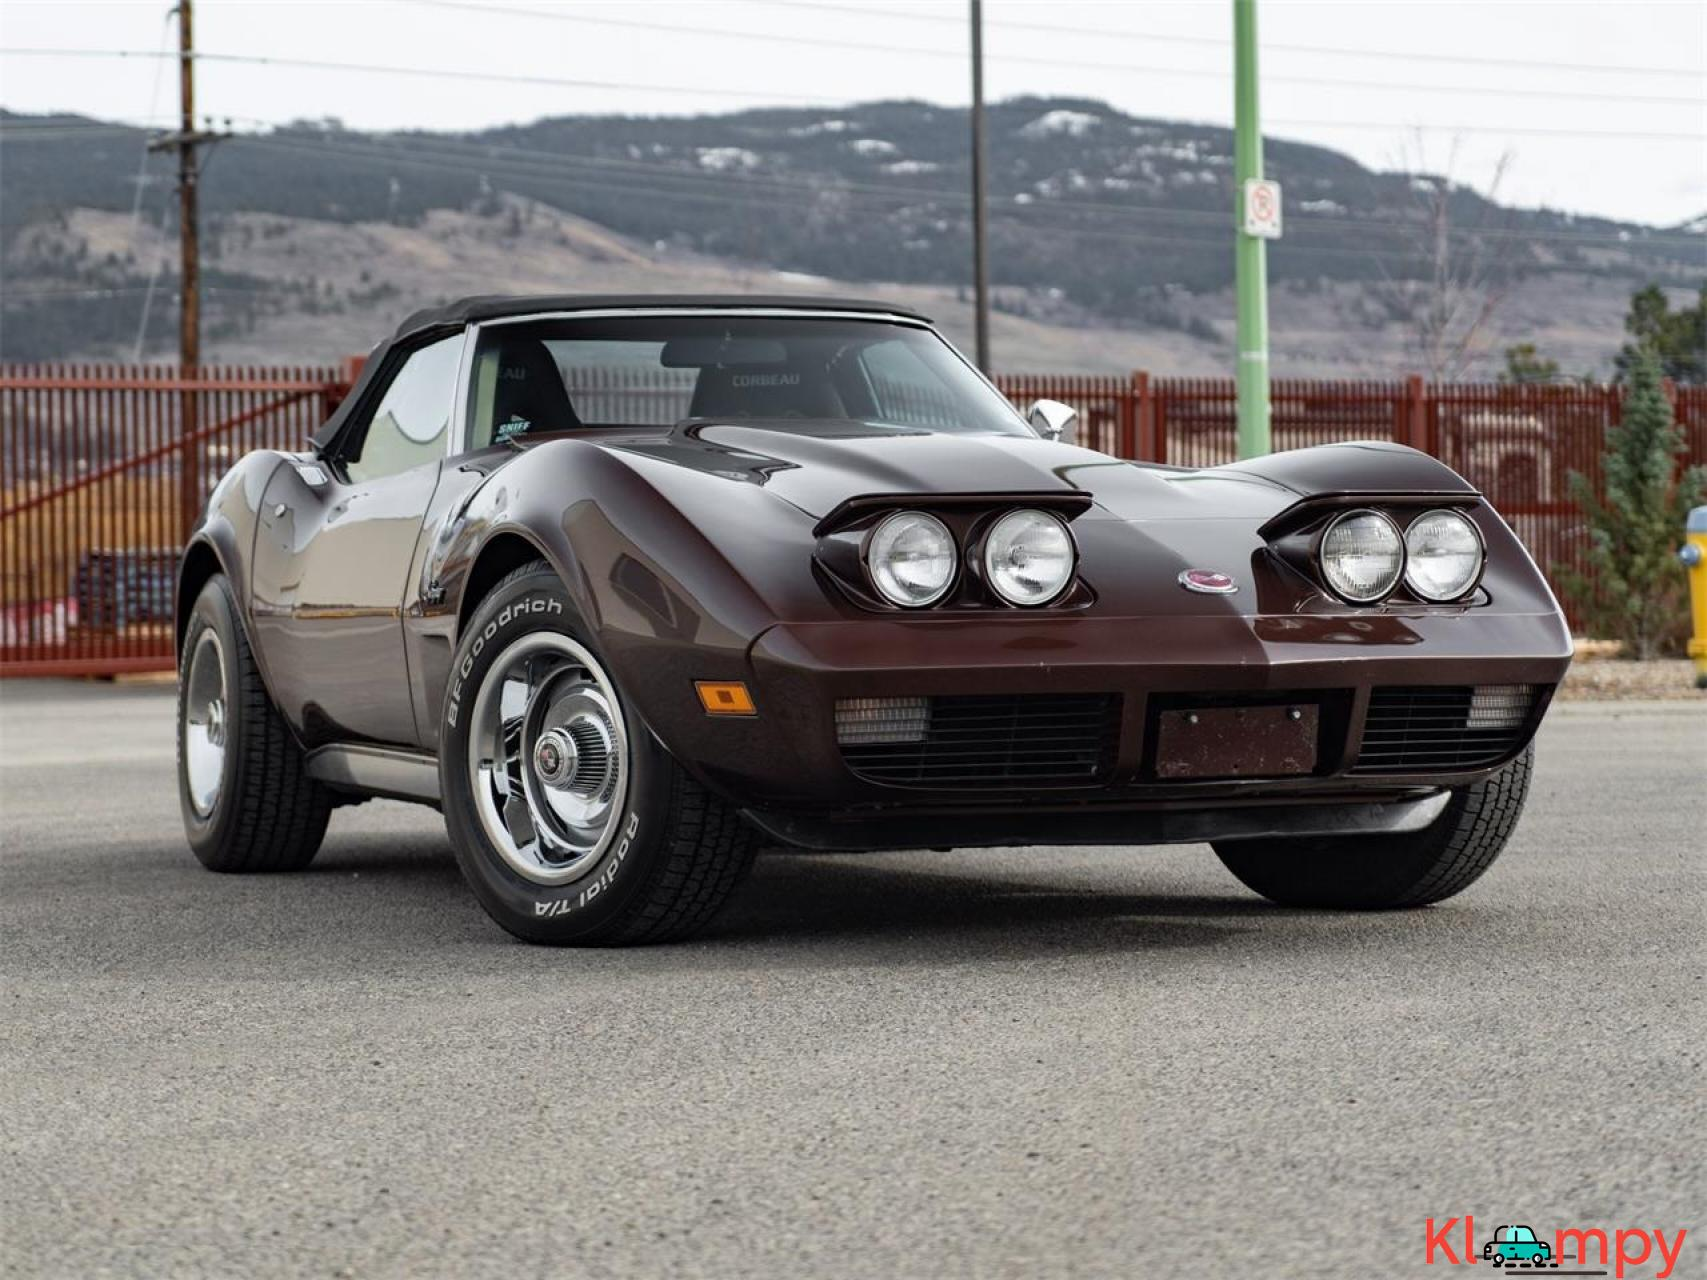 1974 Chevrolet Corvette Pheonix 350ci Crate Engine - 1/20